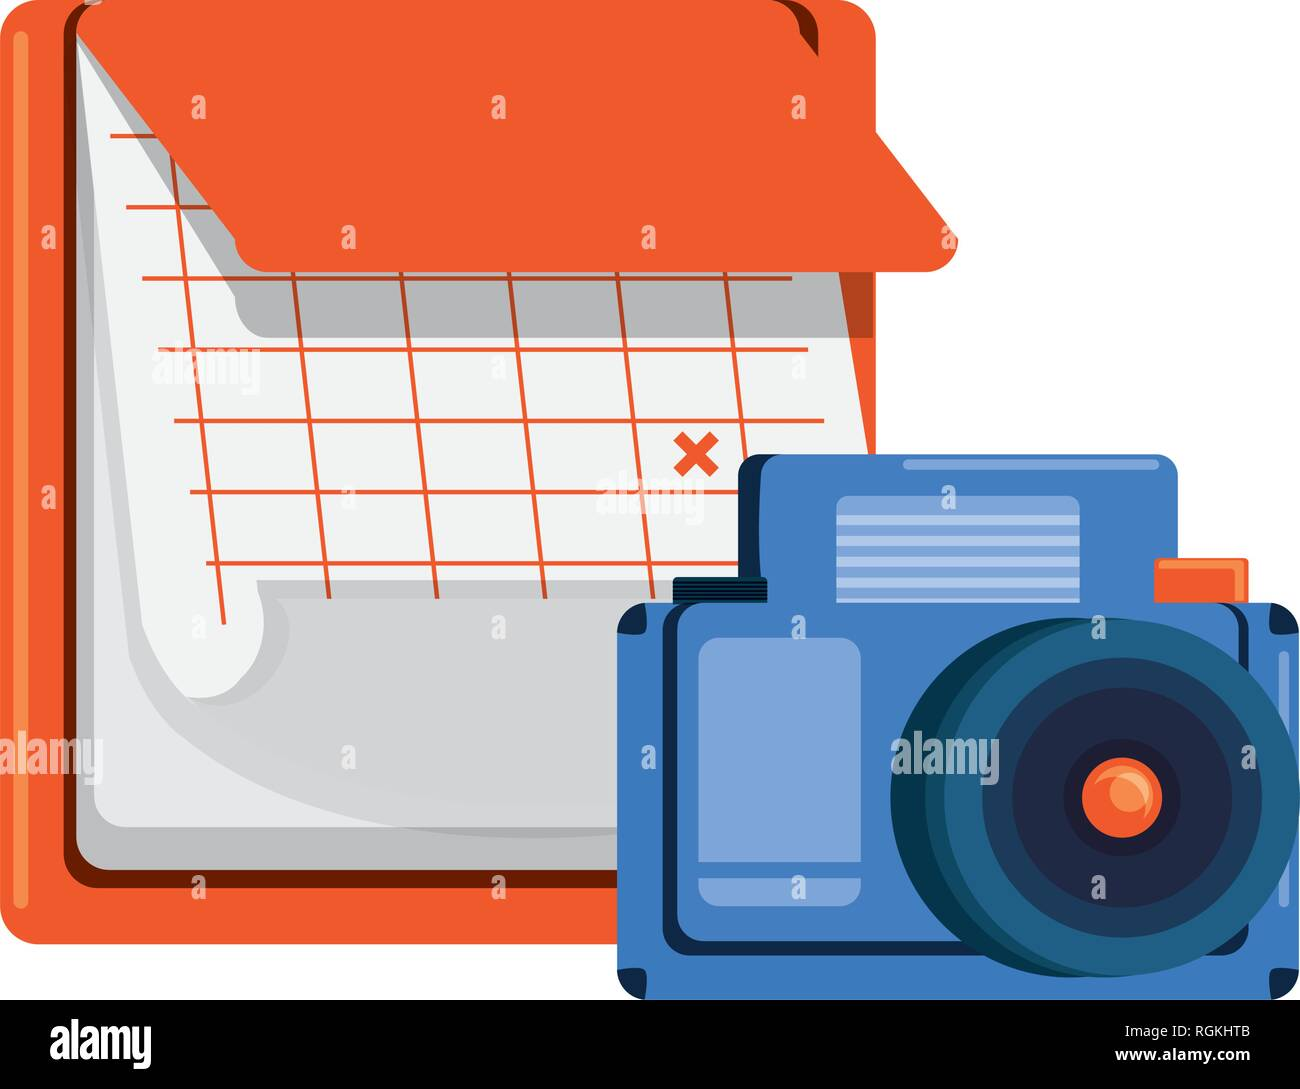 calendar reminder with photographic camera vector illustration design Stock Vector